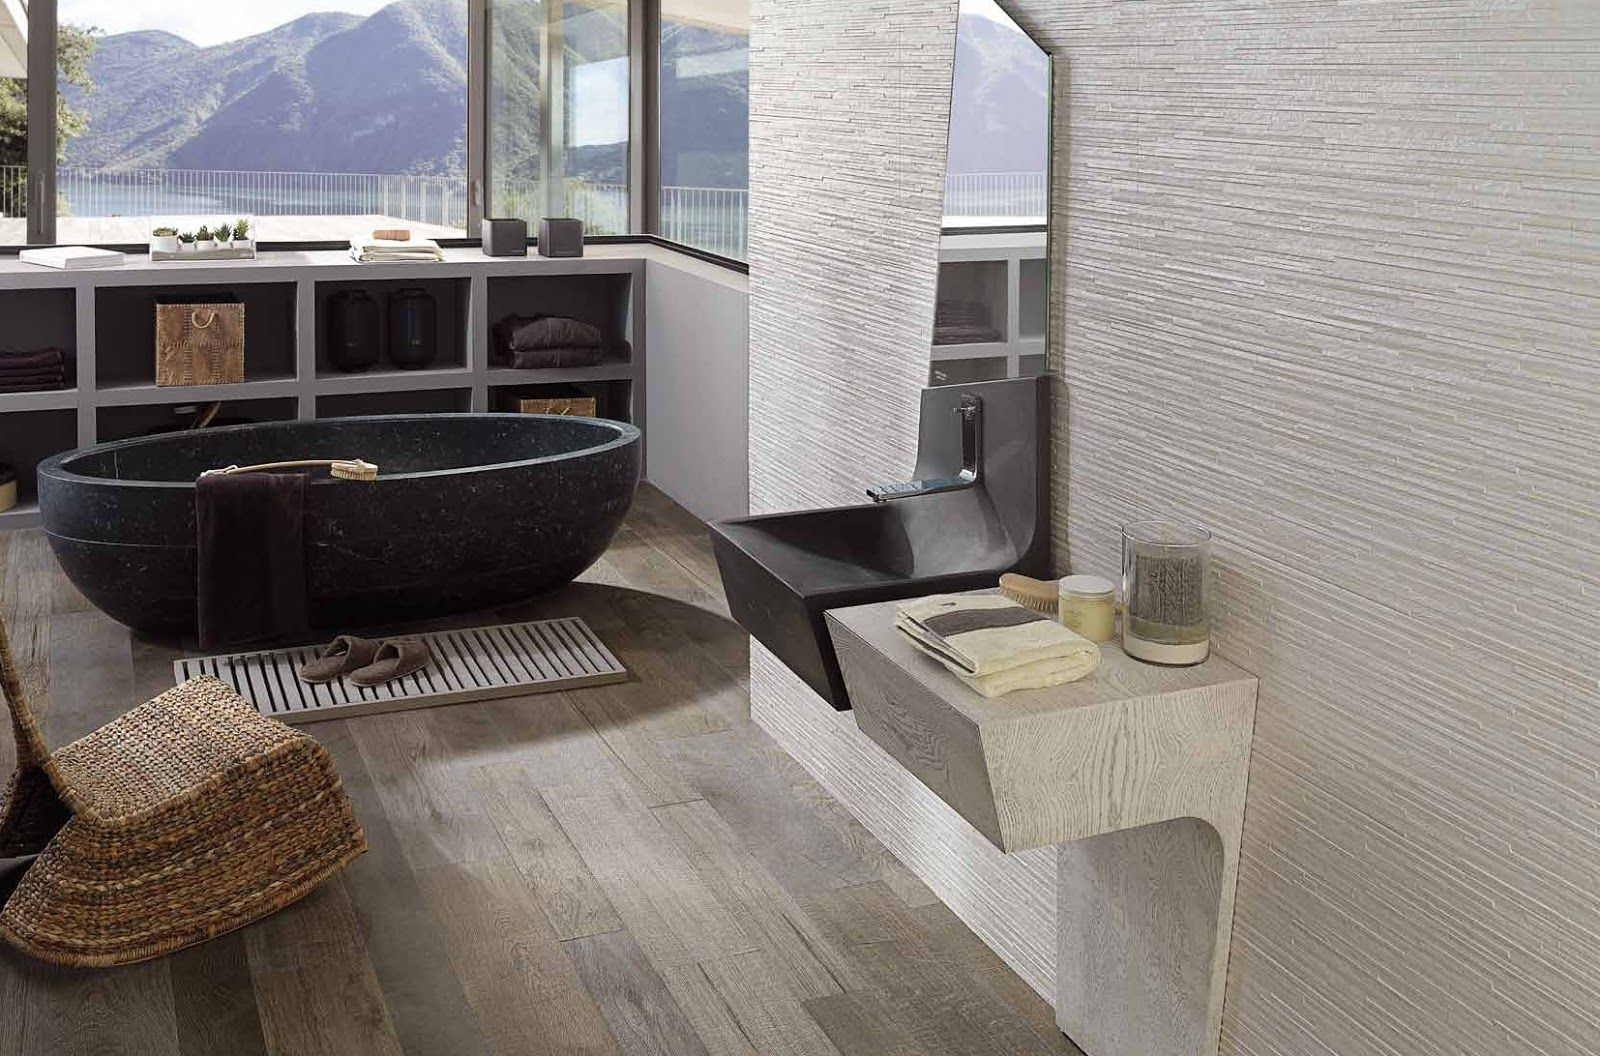 Relief and textures for #Porcelanosa walls #tiles cerámica #ceramic ...